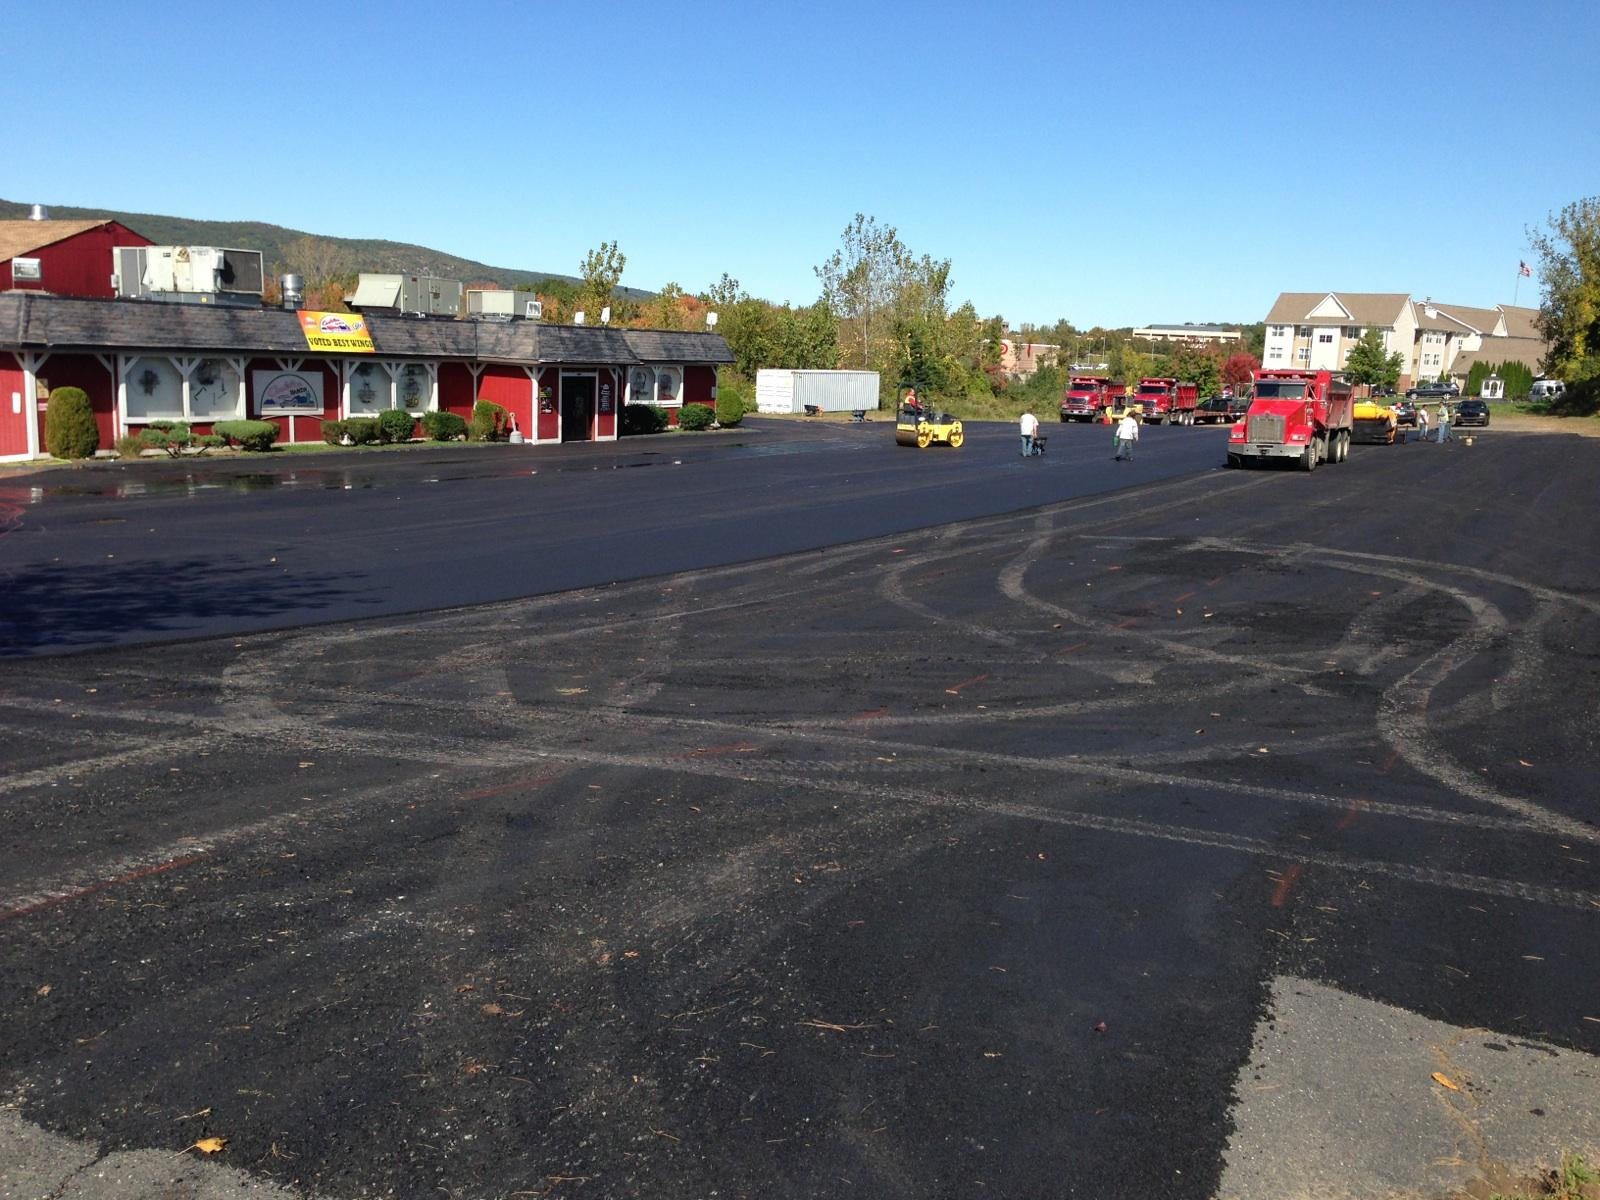 Paving the parking lot at the Cadillac Ranch Restaurant